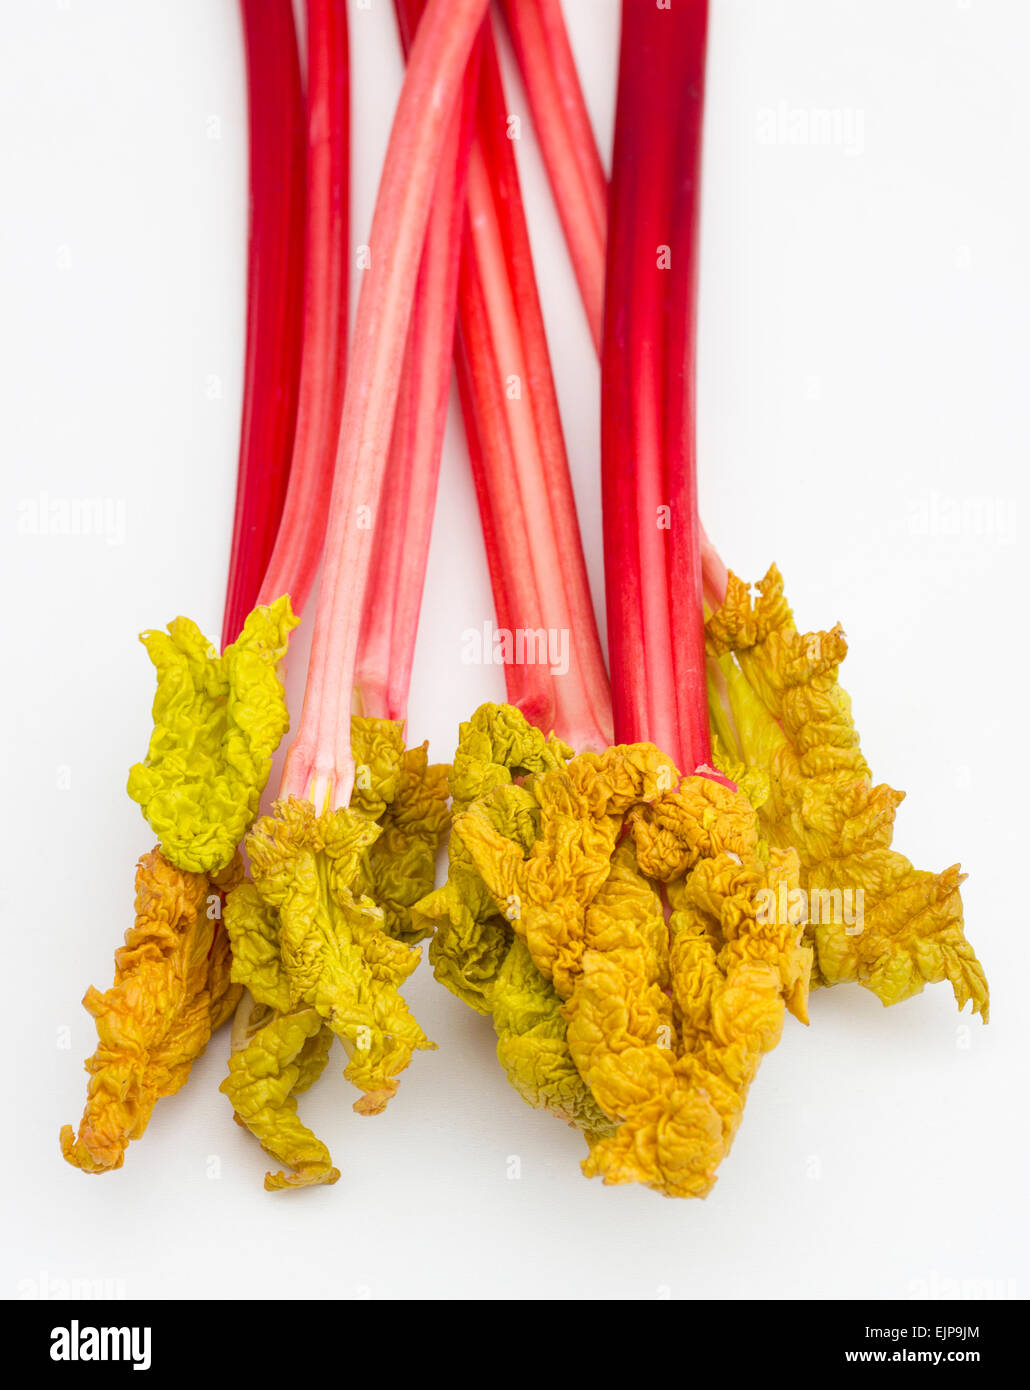 Fresh forced Yorkshire rhubarb with leaves - Stock Image